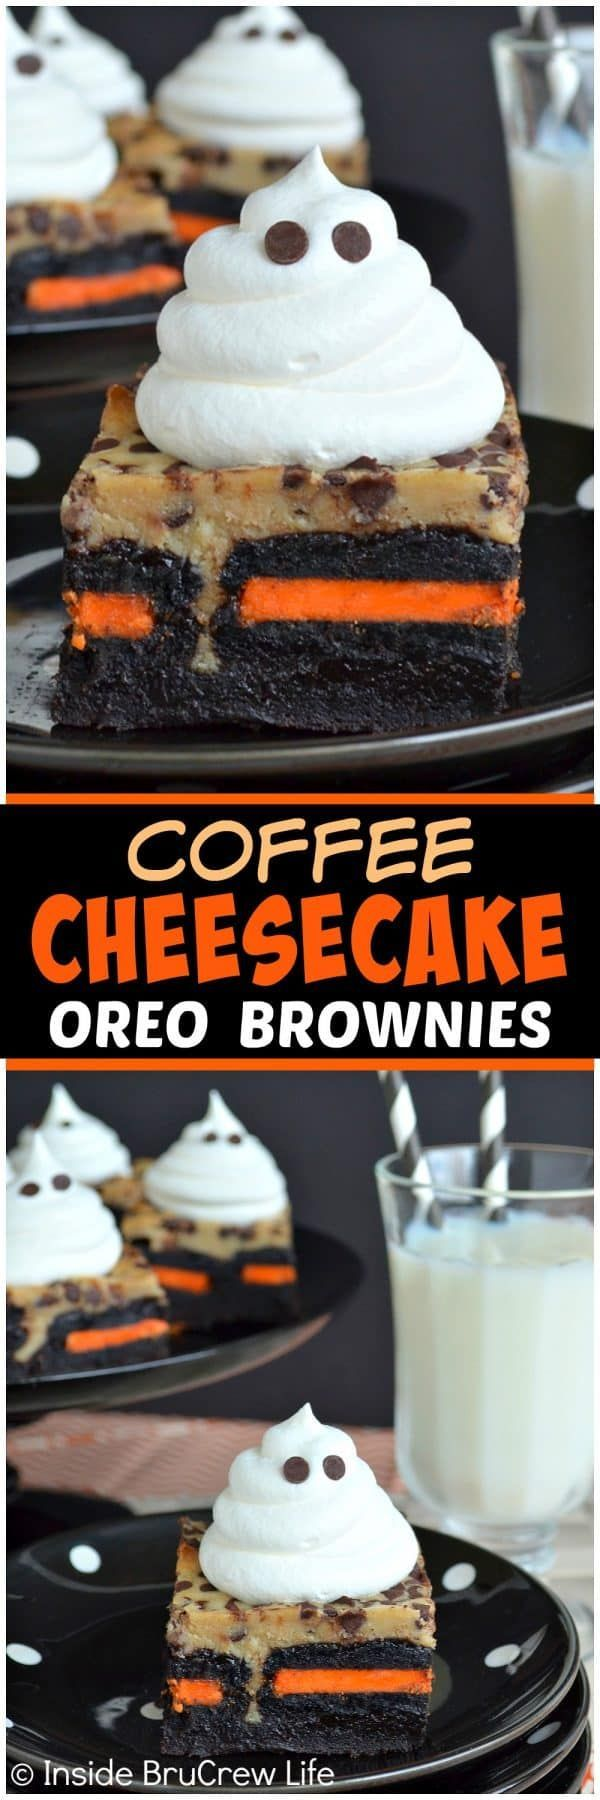 Coffee Cheesecake Oreo Brownies - a Cool Whip ghost and a hidden layer of holiday Oreos adds a fun flair to these cheesecake brownies. Delicious recipe to share at Halloween parties this fall!